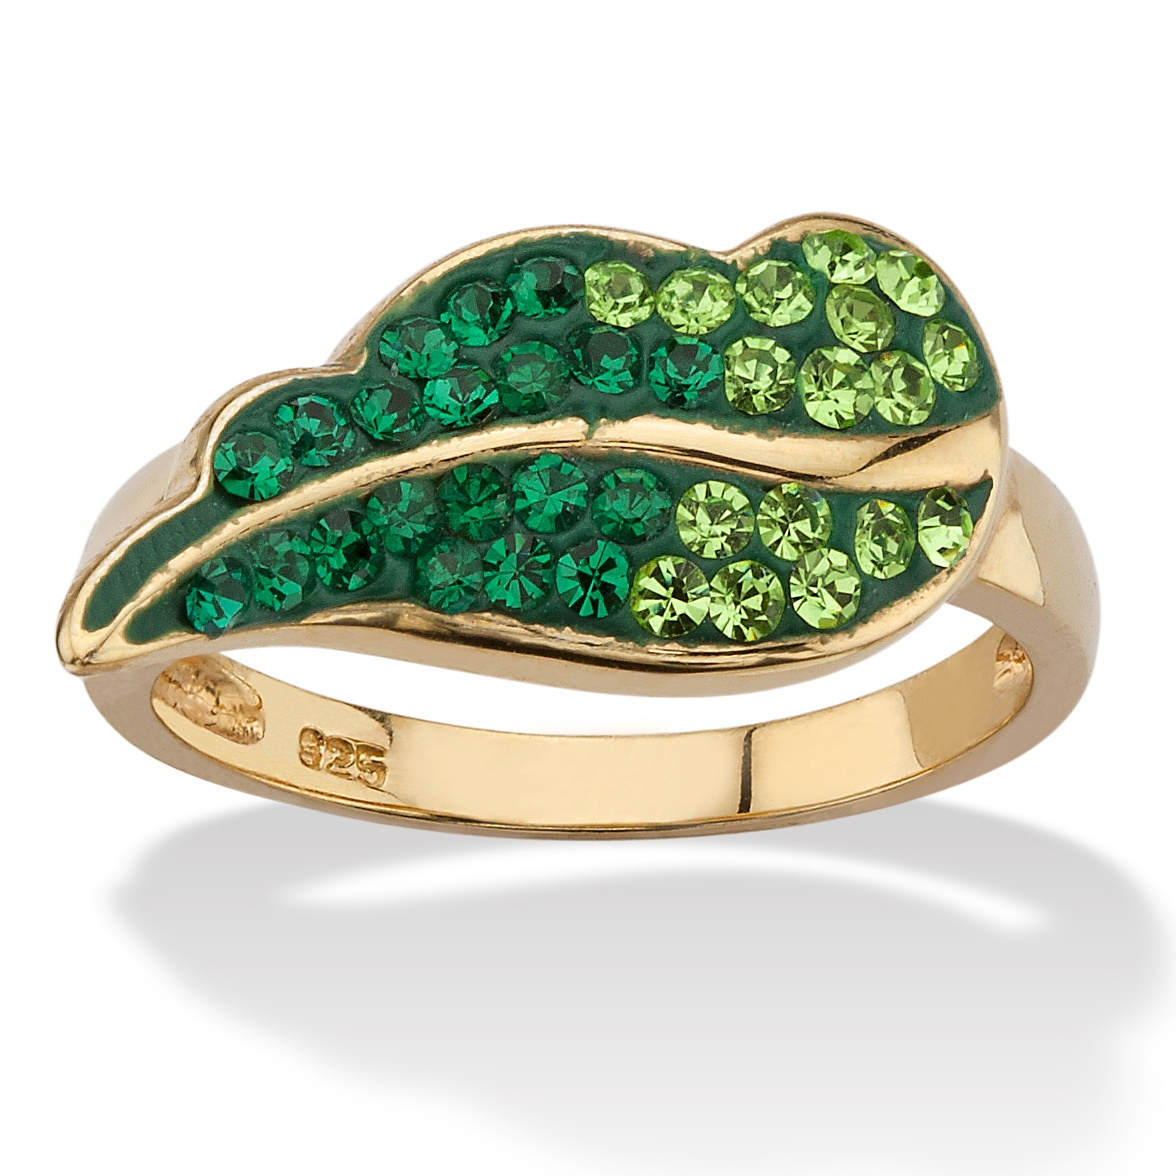 Pave Evergreen Crystal Leaf Ring MADE WITH SWAROVSKI ELEMENTS in 14k Gold over Sterling Silver